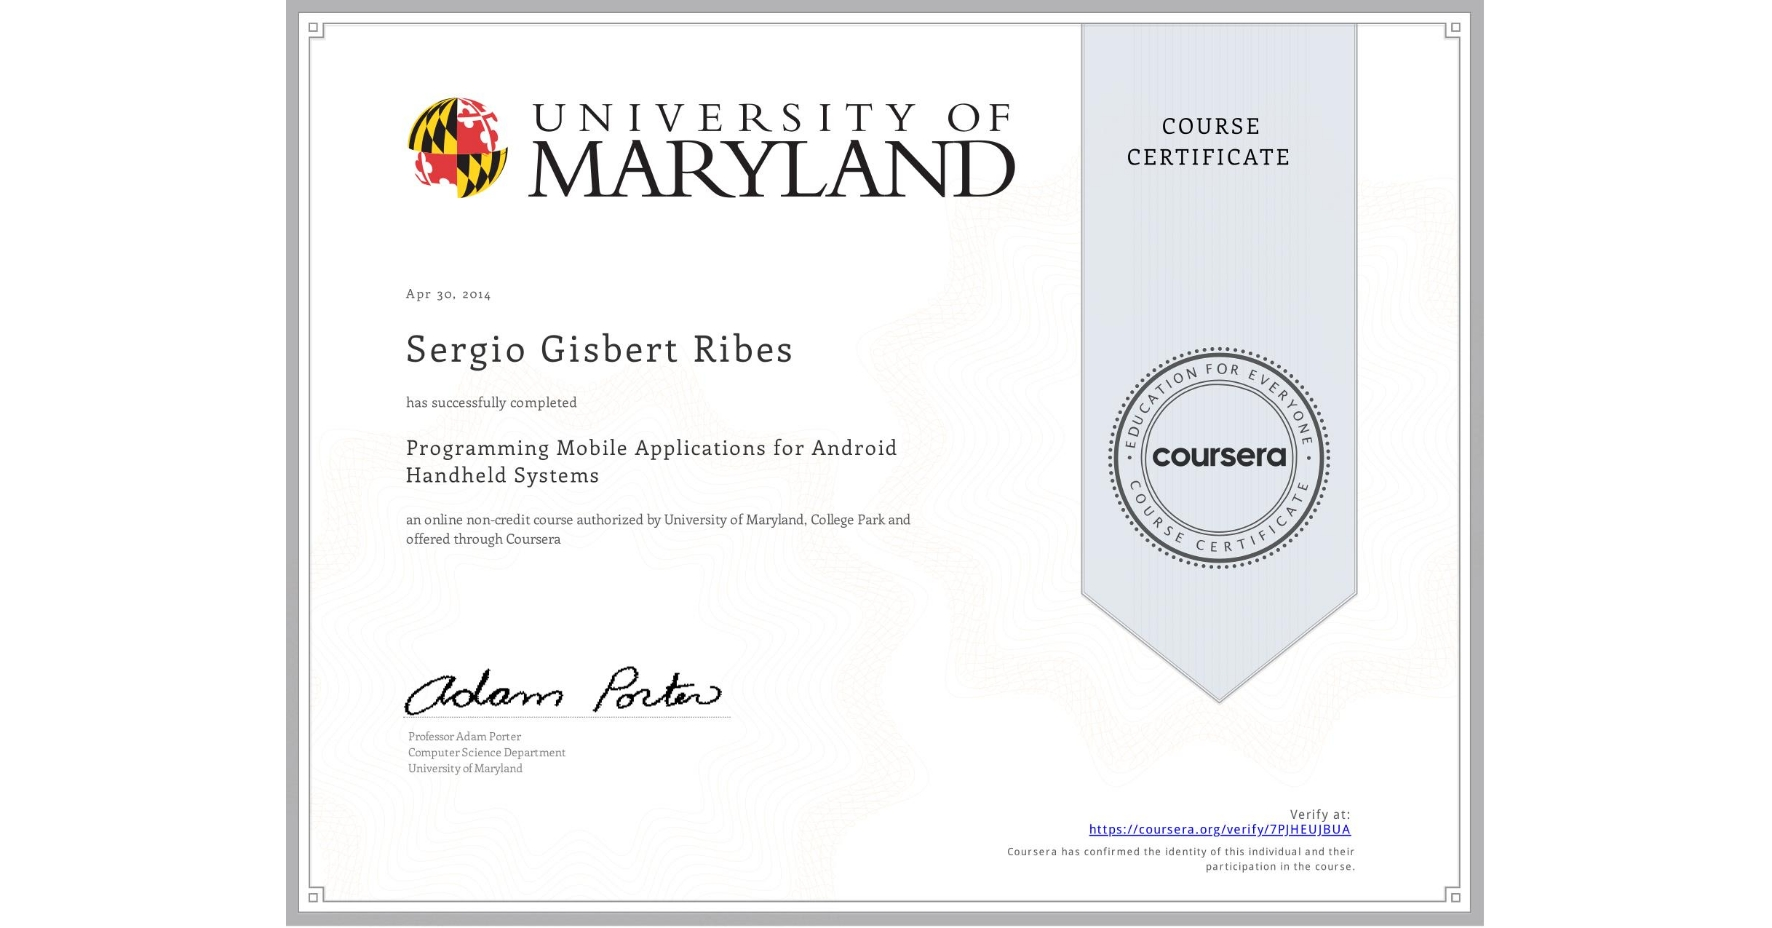 View certificate for Sergio Gisbert Ribes, Programming Mobile Applications for Android Handheld Systems, an online non-credit course authorized by University of Maryland, College Park and offered through Coursera